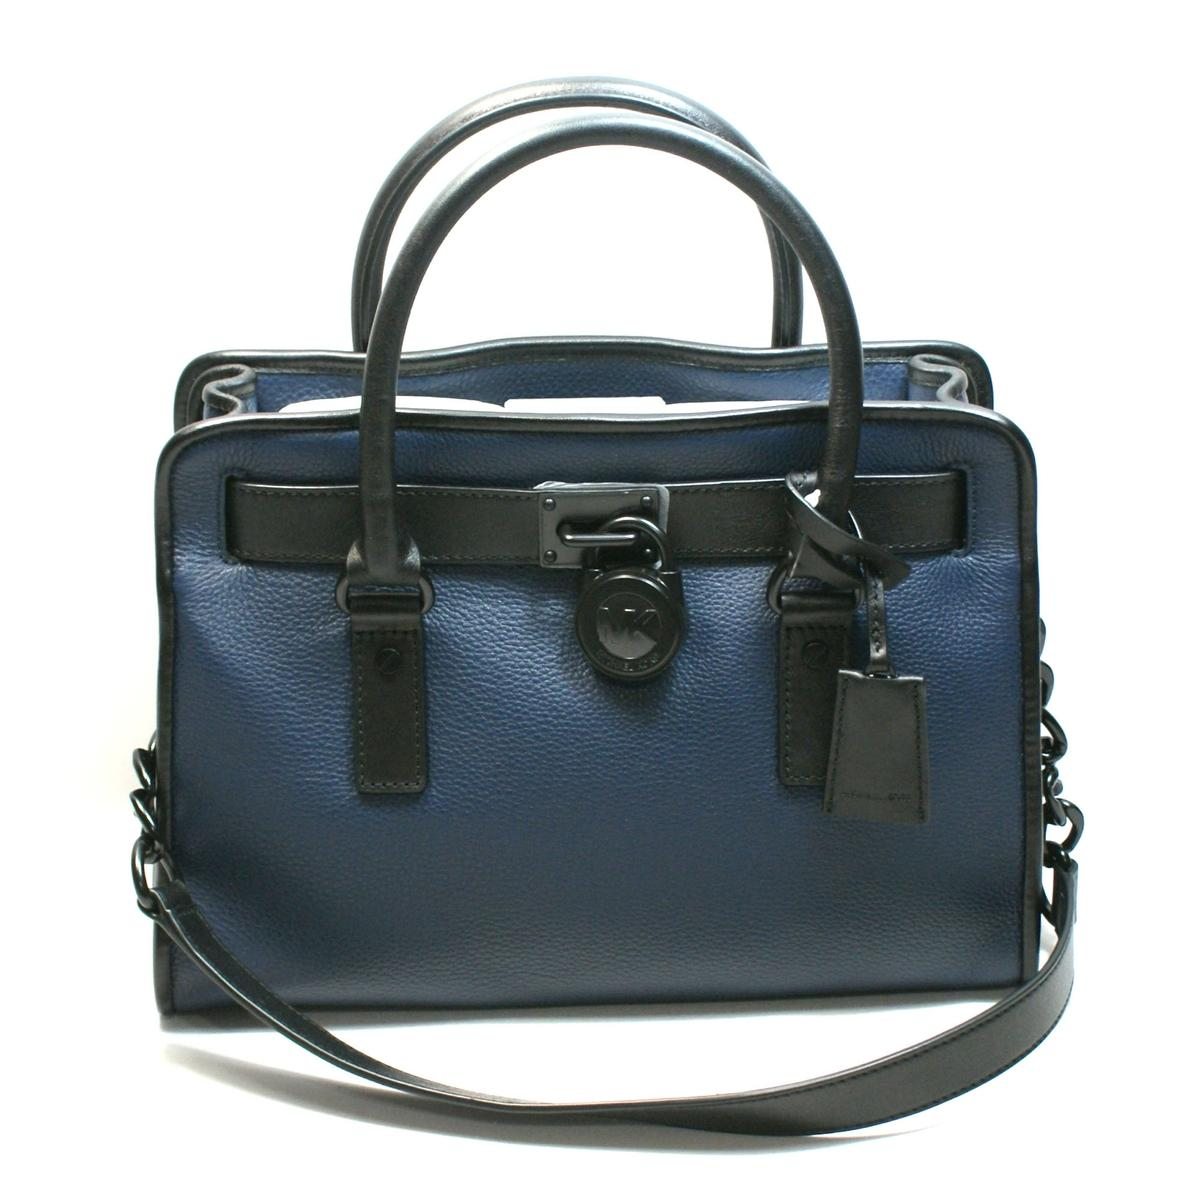 39c68e6665a0 Home · Michael Kors · Hamilton French Binding Genuine Leather East West  Satchel/ Shoulder Bag Navy. CLICK THUMBNAIL TO ZOOM. Found ...